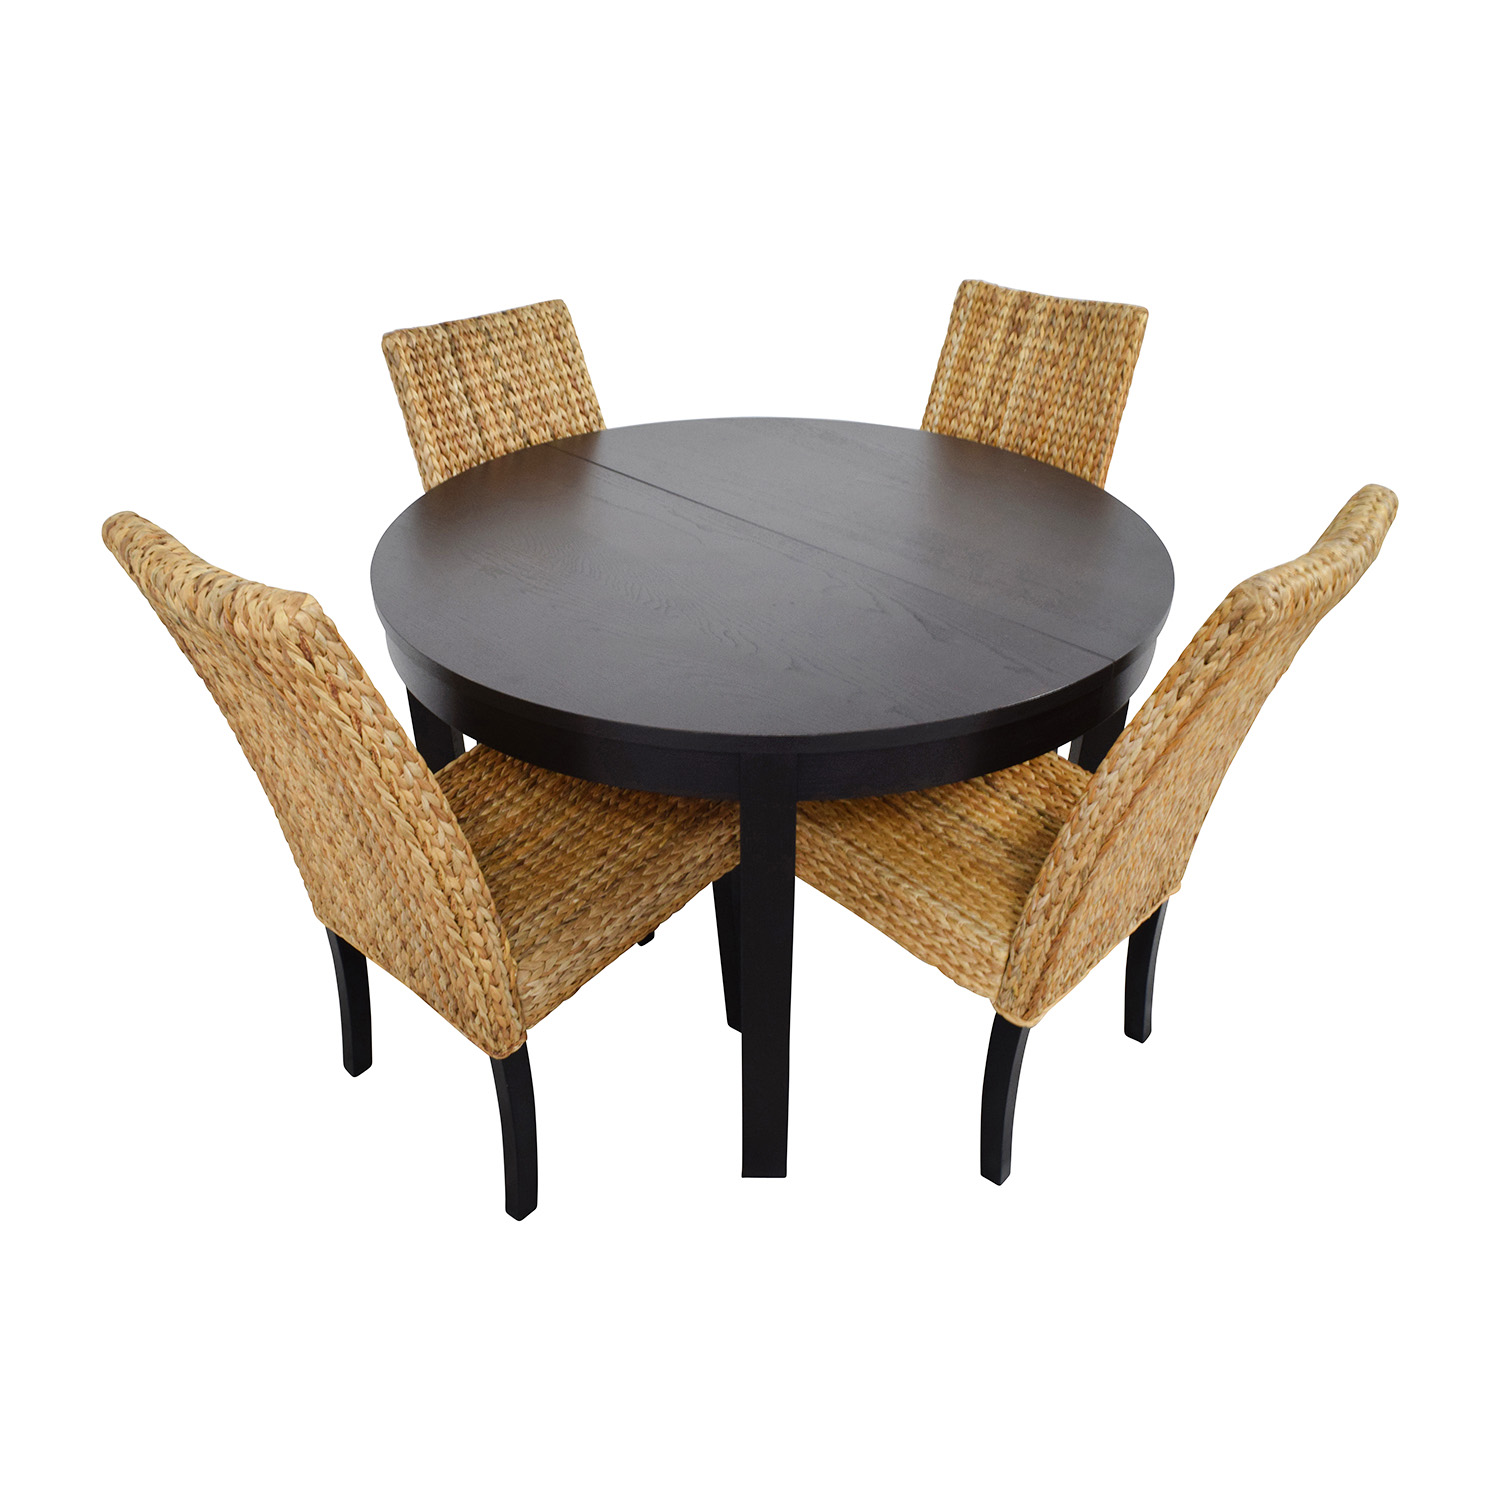 Macy's & IKEA Round Black Dining Table Set With